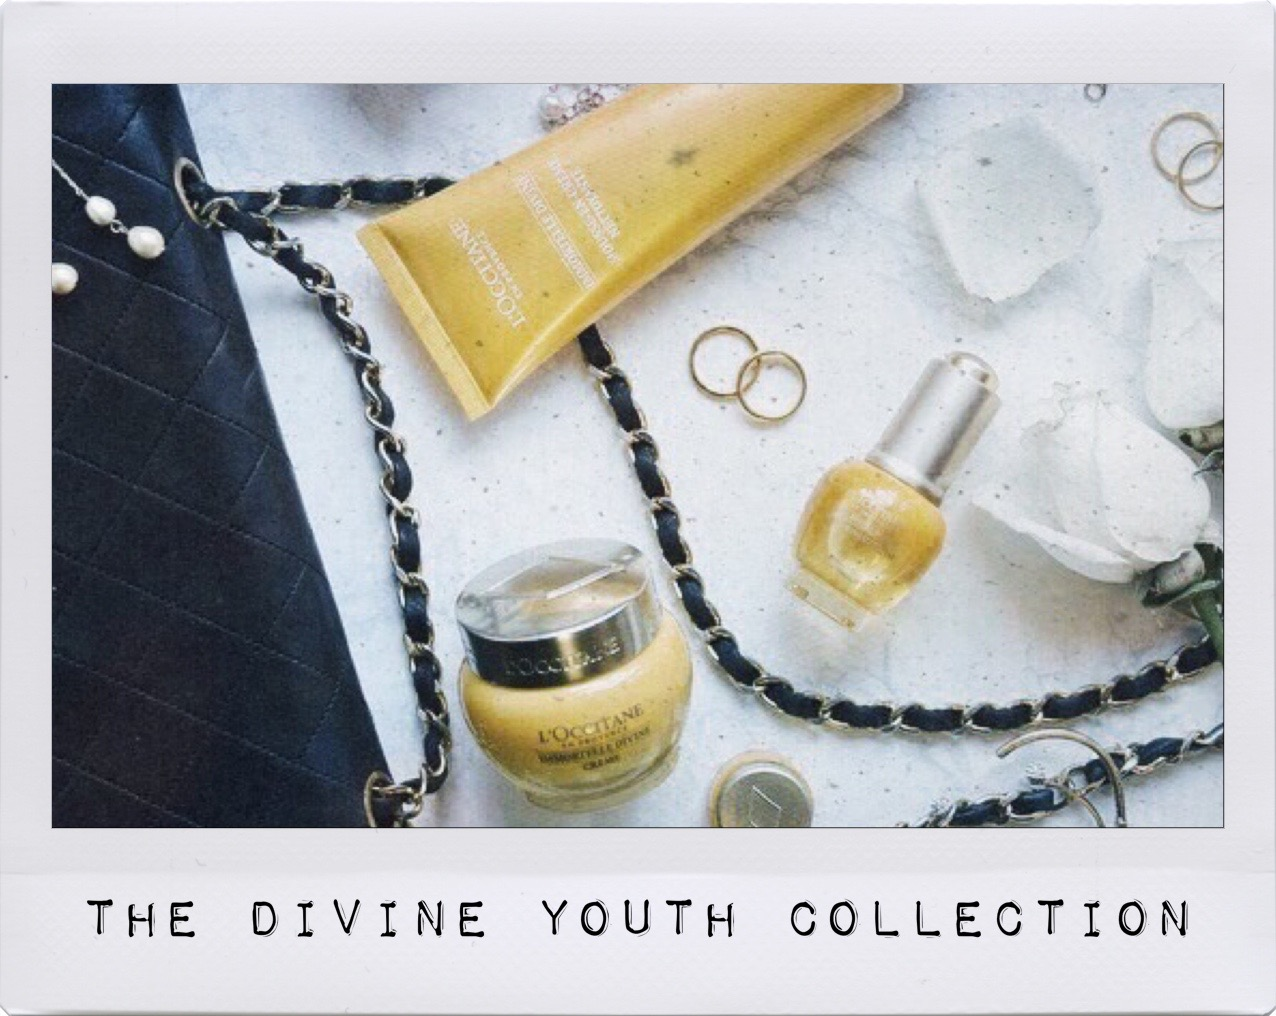 On My Vanity | A L'Occitane Holiday // The L'Occitane Divine Youth Holiday Gift Set // L'Occitane Holiday Gift Sets // Los Angeles Fashion & Beauty Blogger Daphne Blunt: To Style, With Love